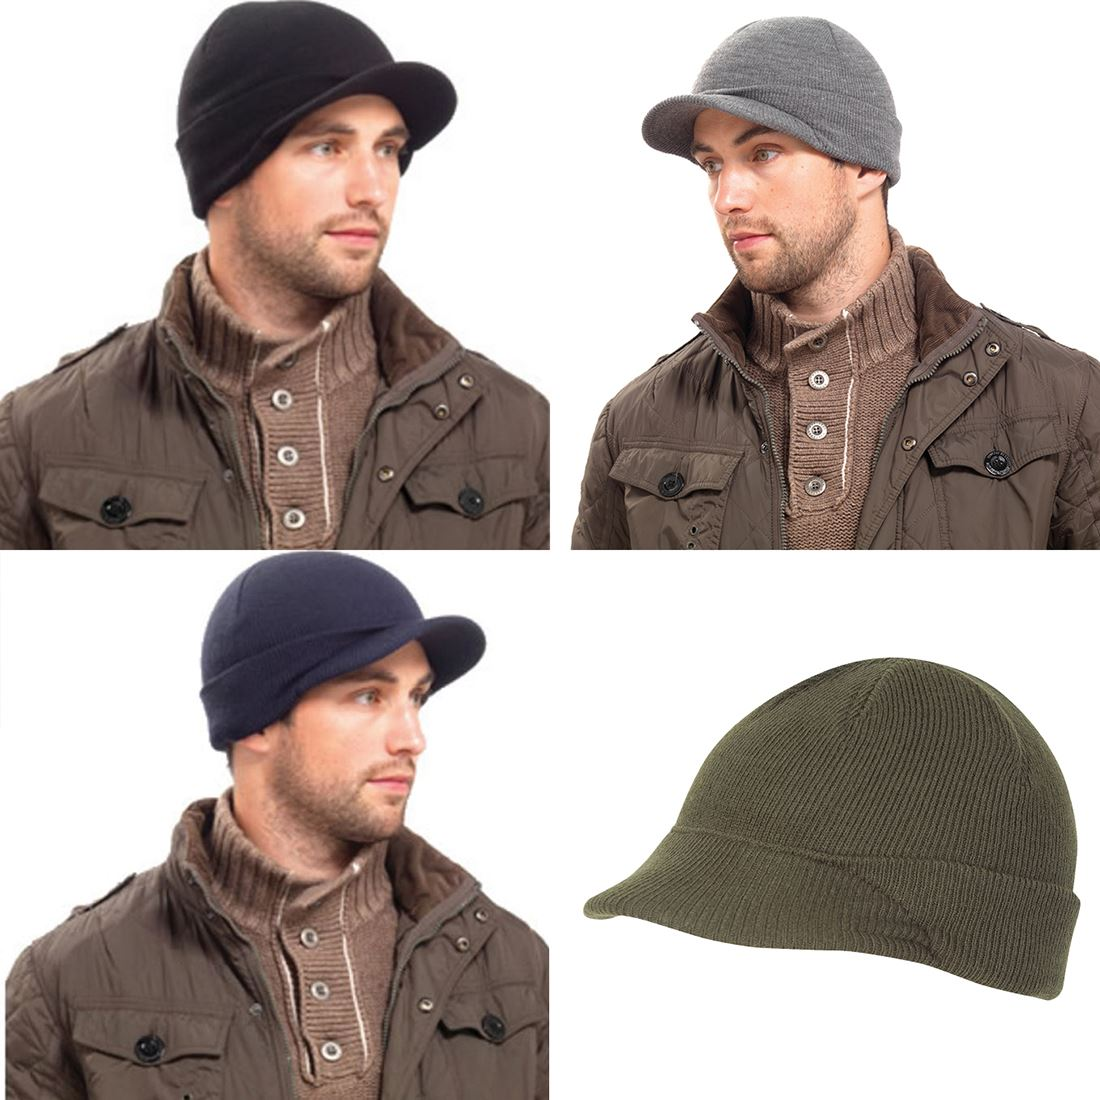 WINTER WARM MENS JEEP HAT US MILITARY PEAKED WATCH CAP ARMY CADET ... d7e84204e44